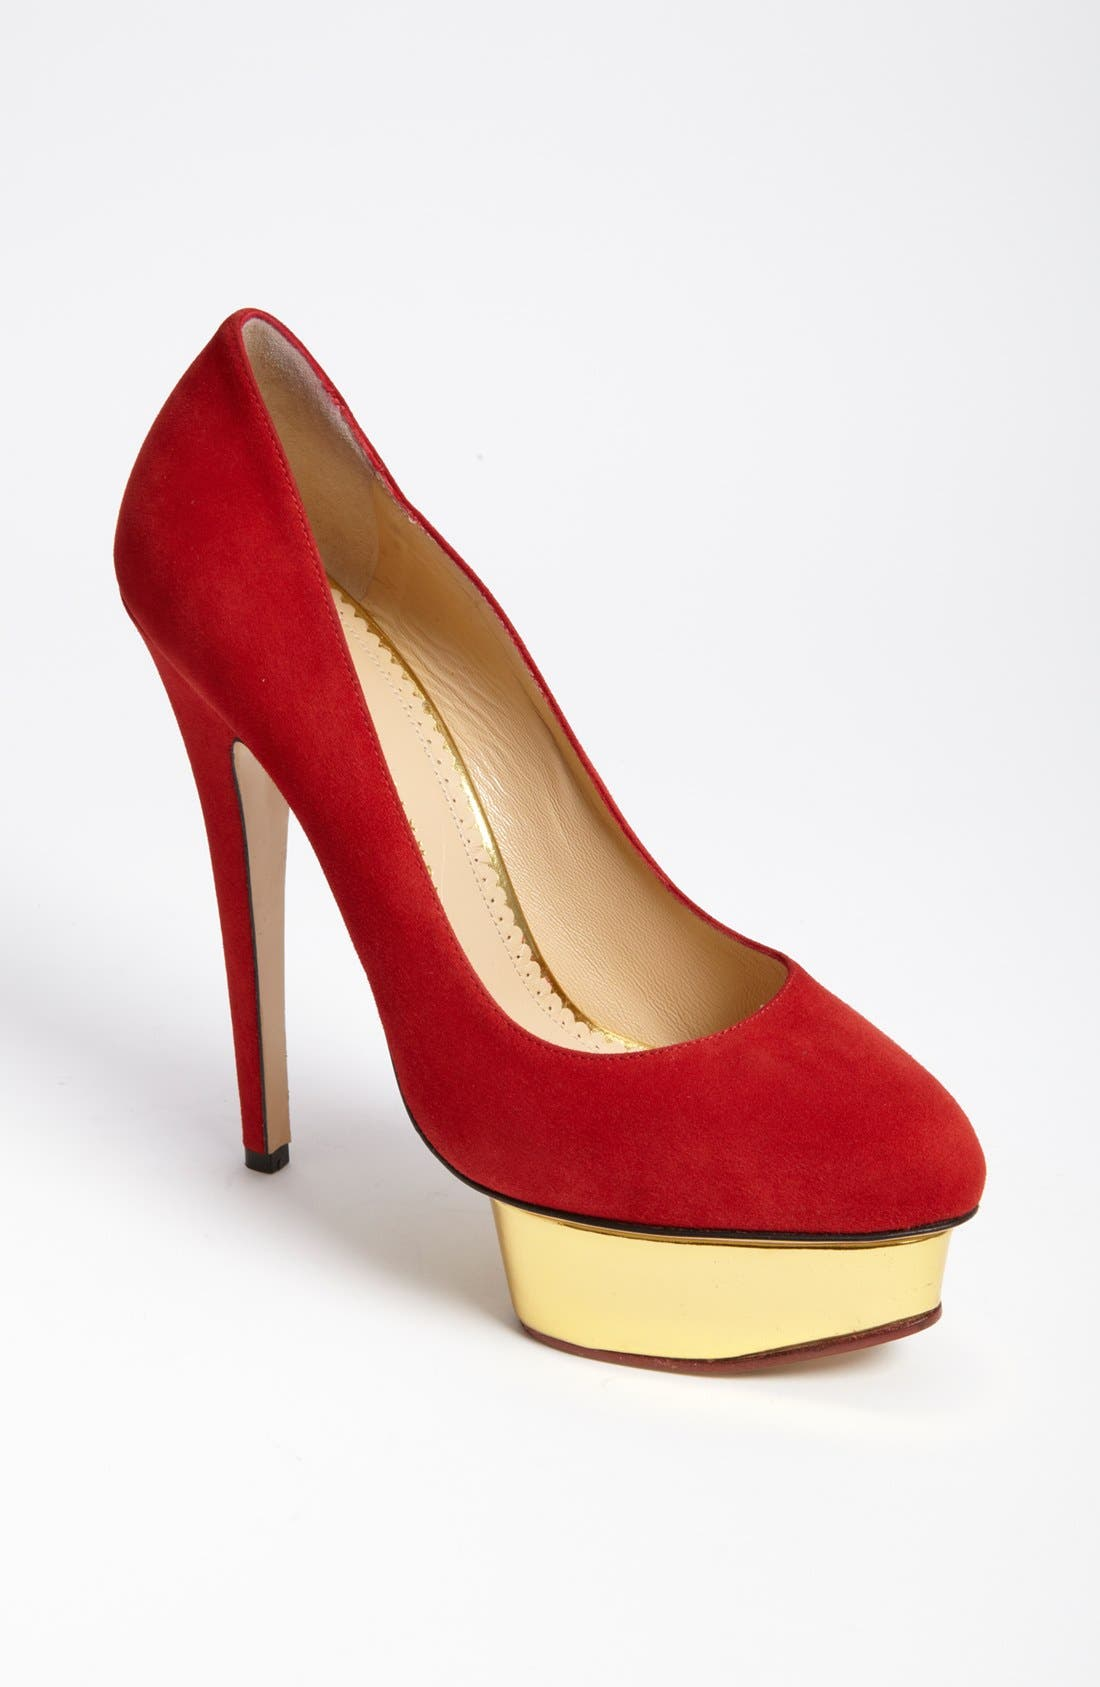 Main Image - Charlotte Olympia 'Dolly' Platform Pump